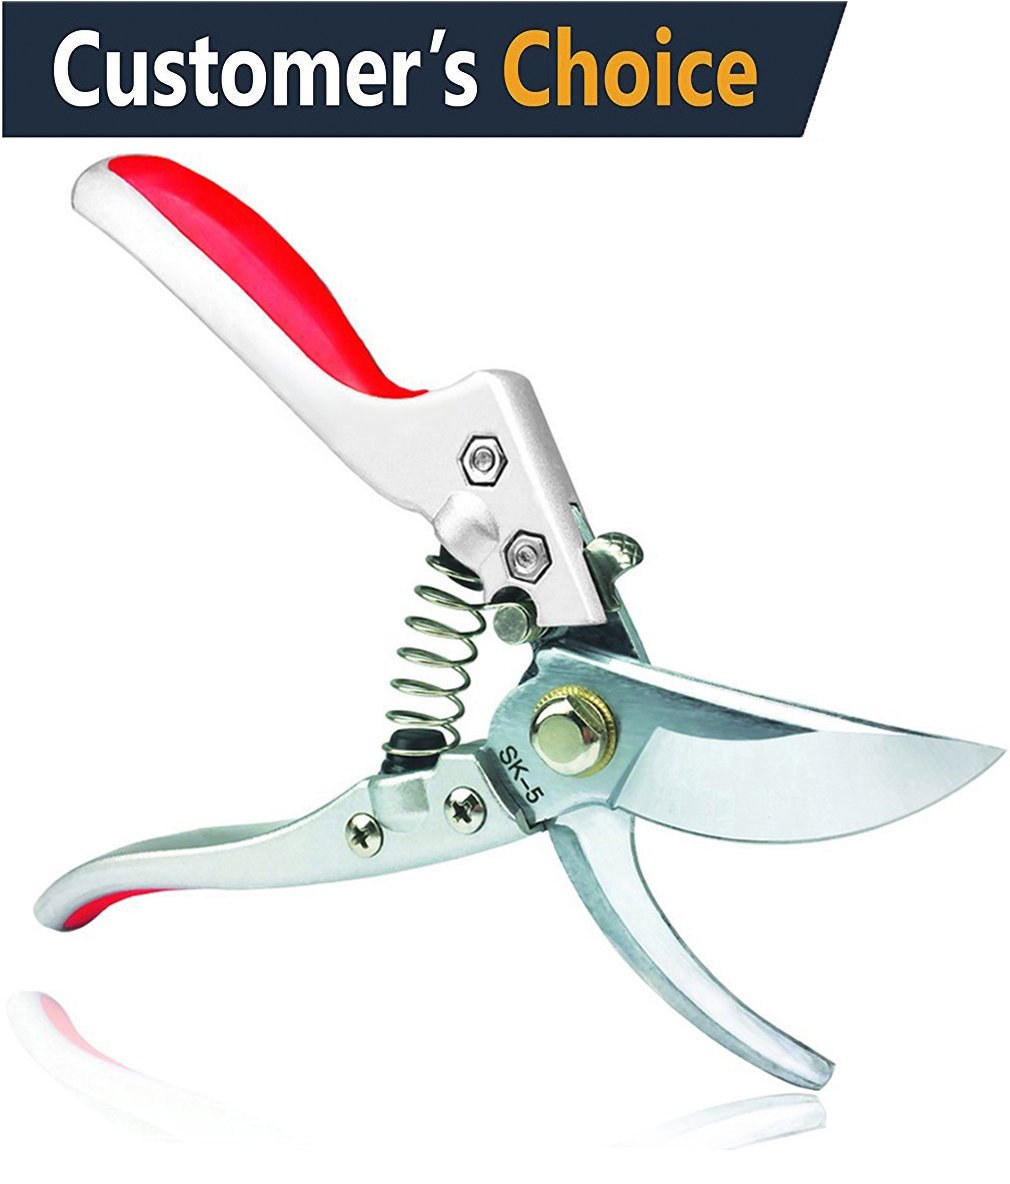 TILLAIN MTNZXZ Pruning Shears Silicone Handle Scissors Professional Bypass Pruners Gardening Cutters Tools SK-5 Steel Blade Clippers Tree Trimmer Efficient Rope Snips